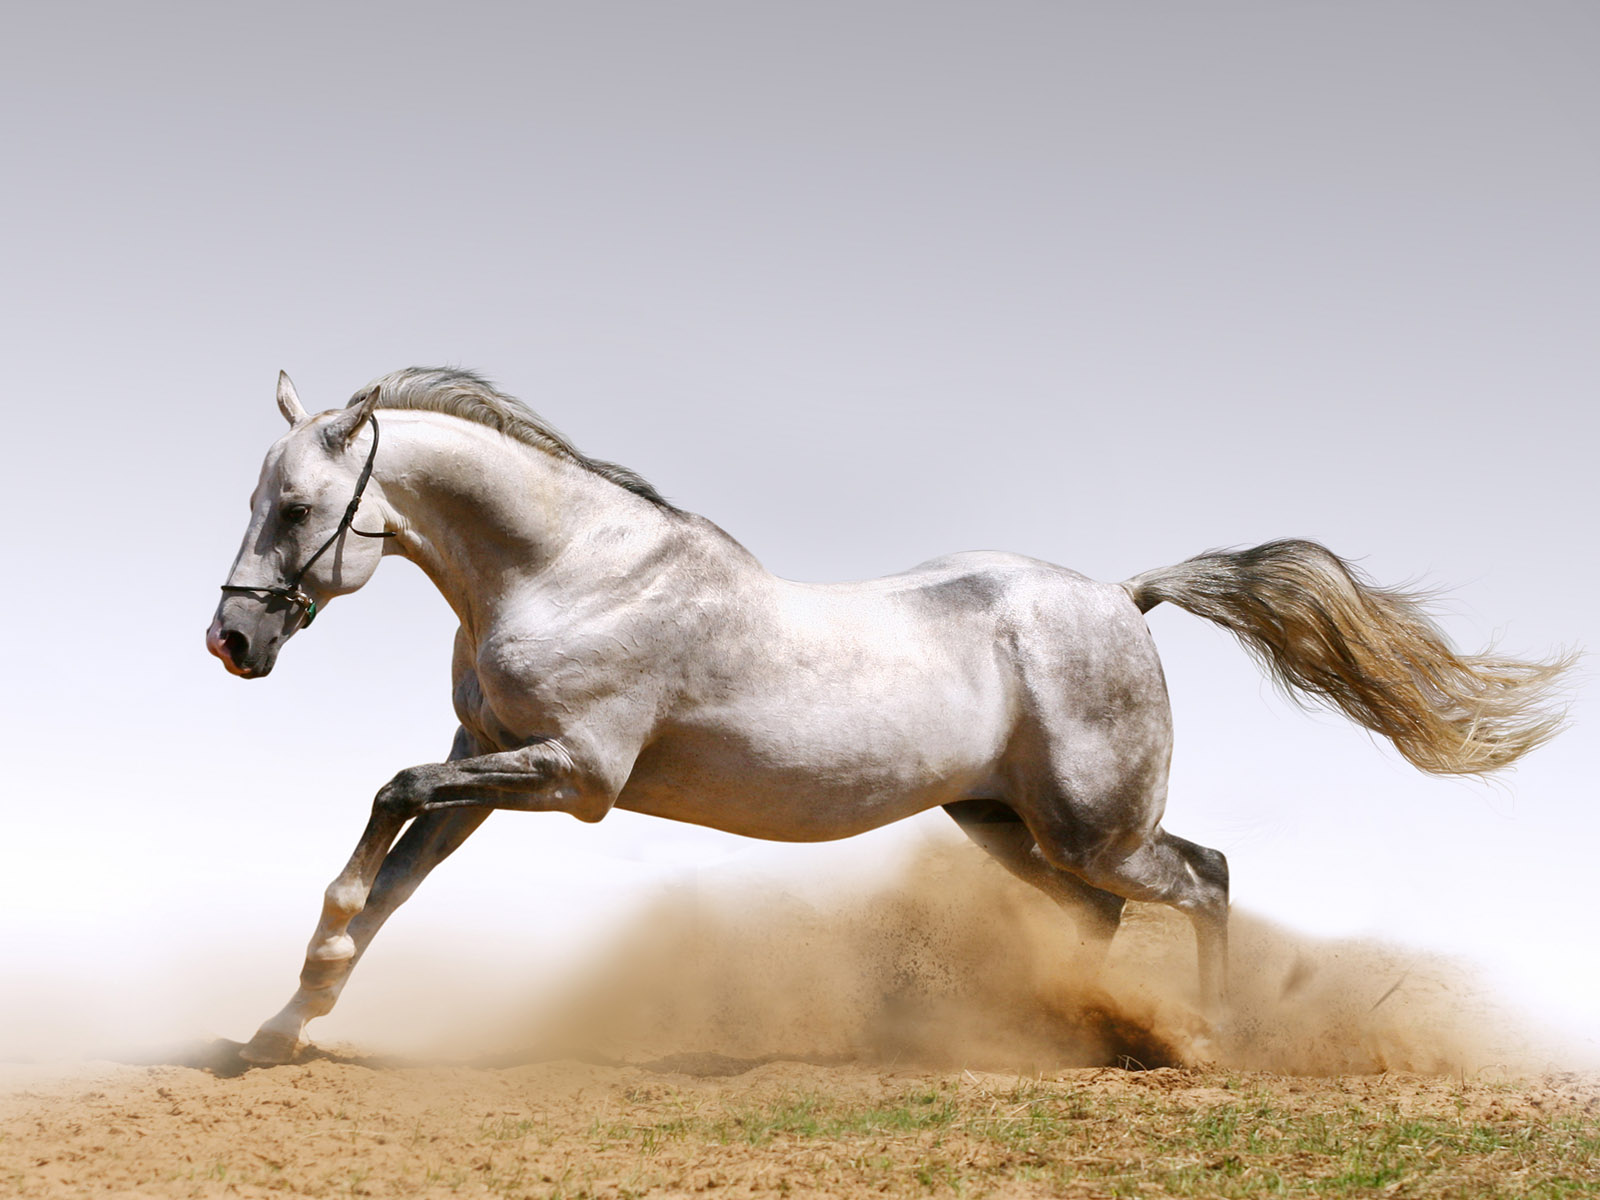 Animals Zoo Park: 9 White Running Horse Wallpapers, White ... - photo#27